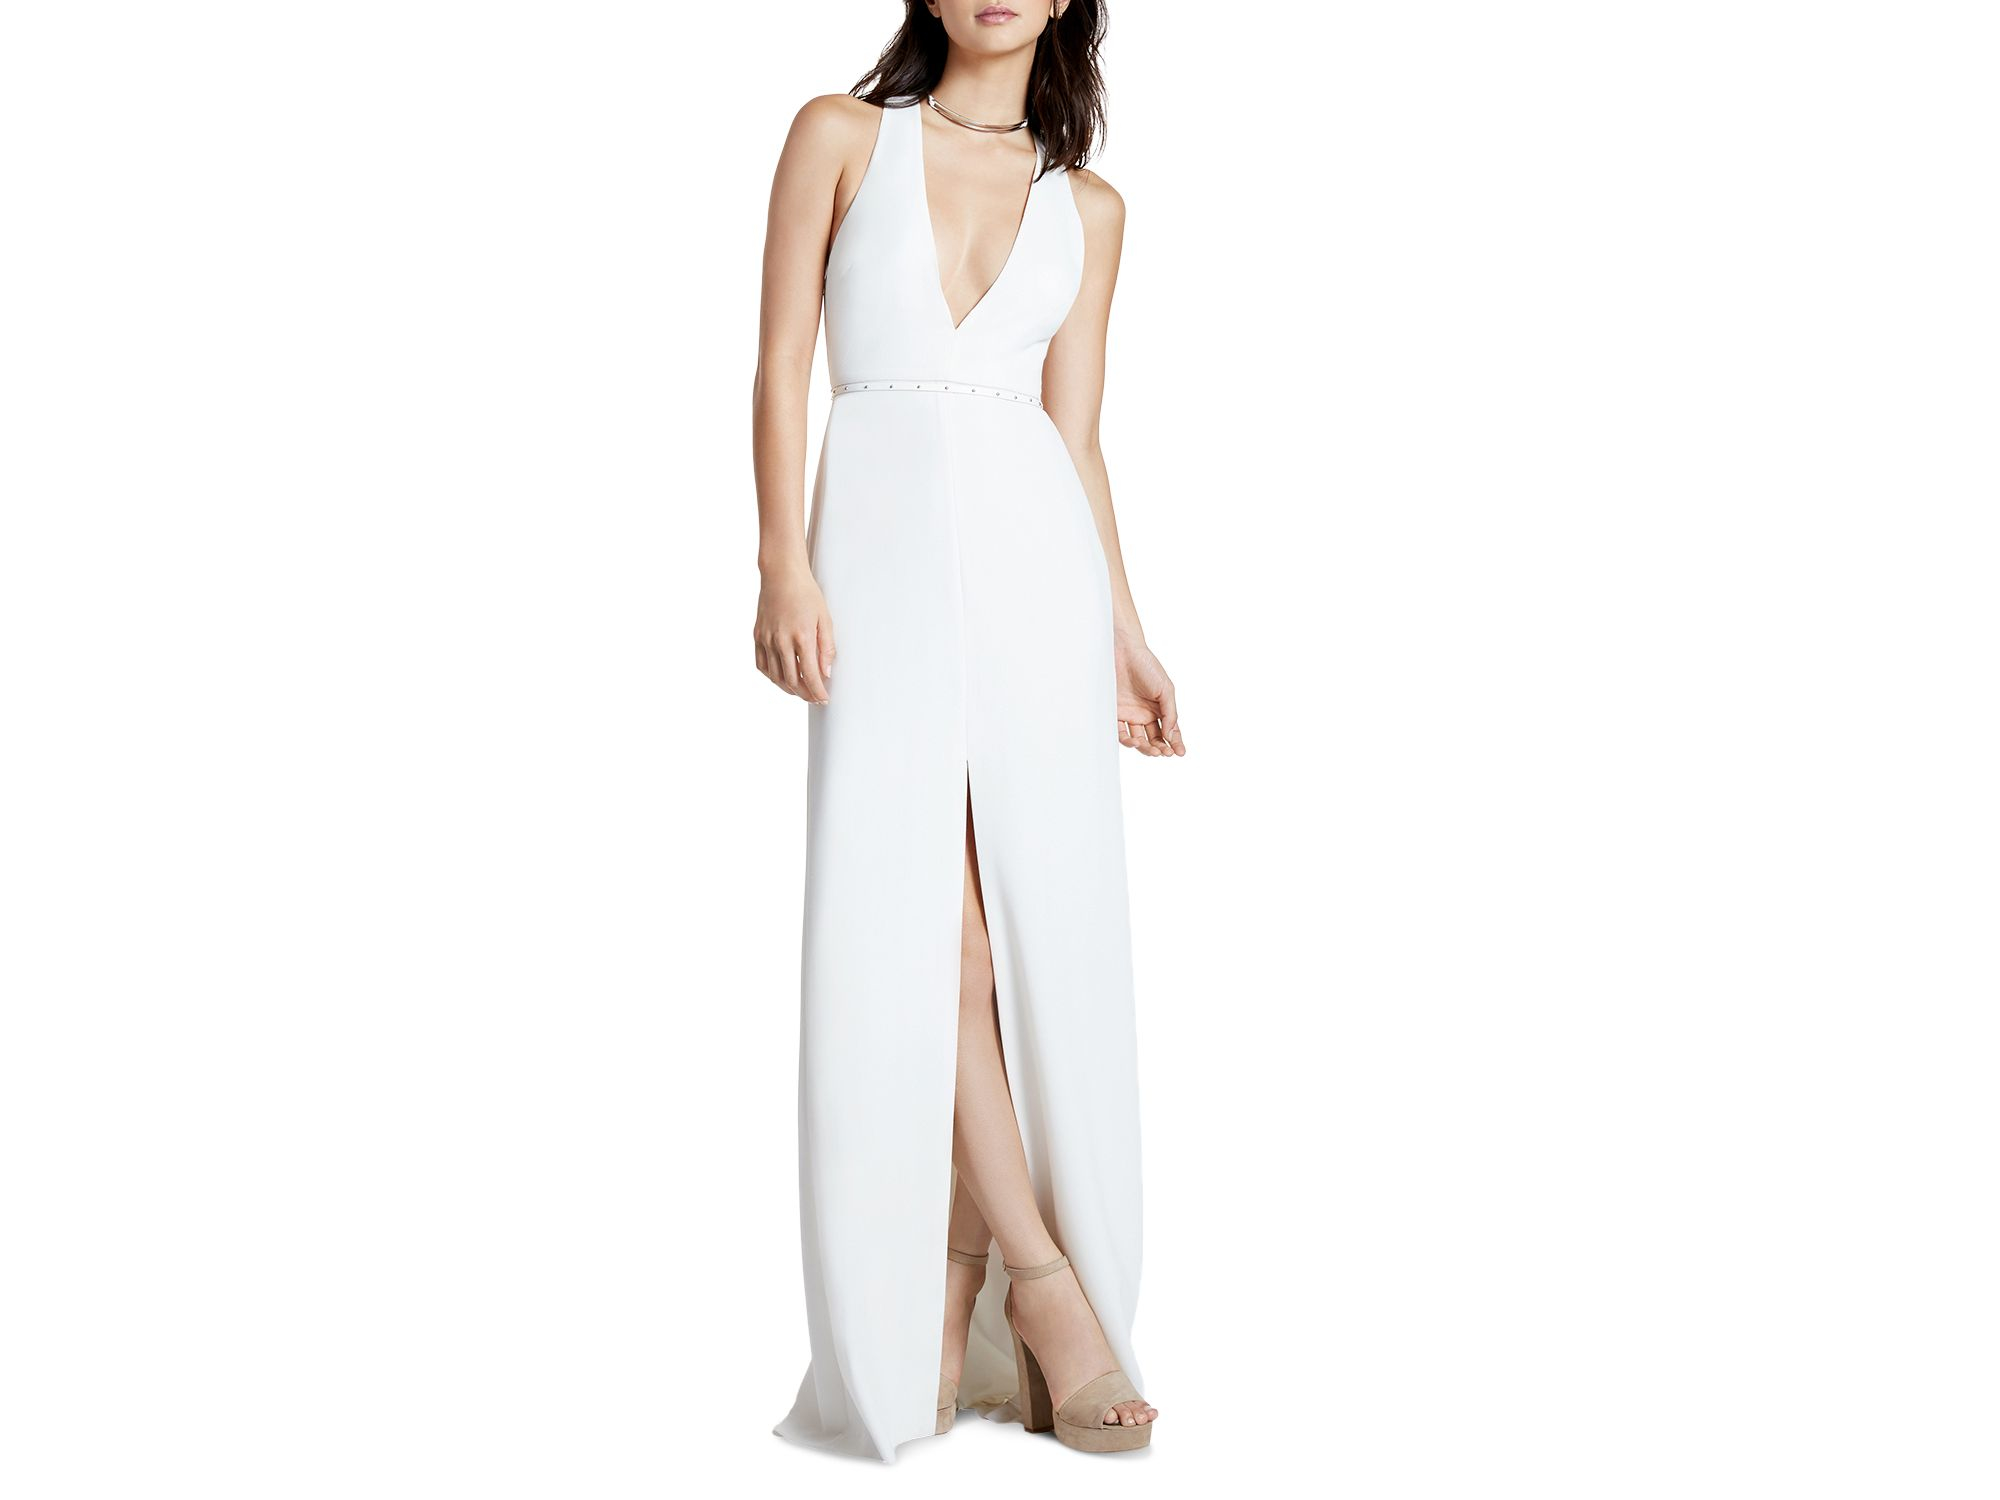 Dorable White Cut Out Gown Image - Wedding and flowers ispiration ...